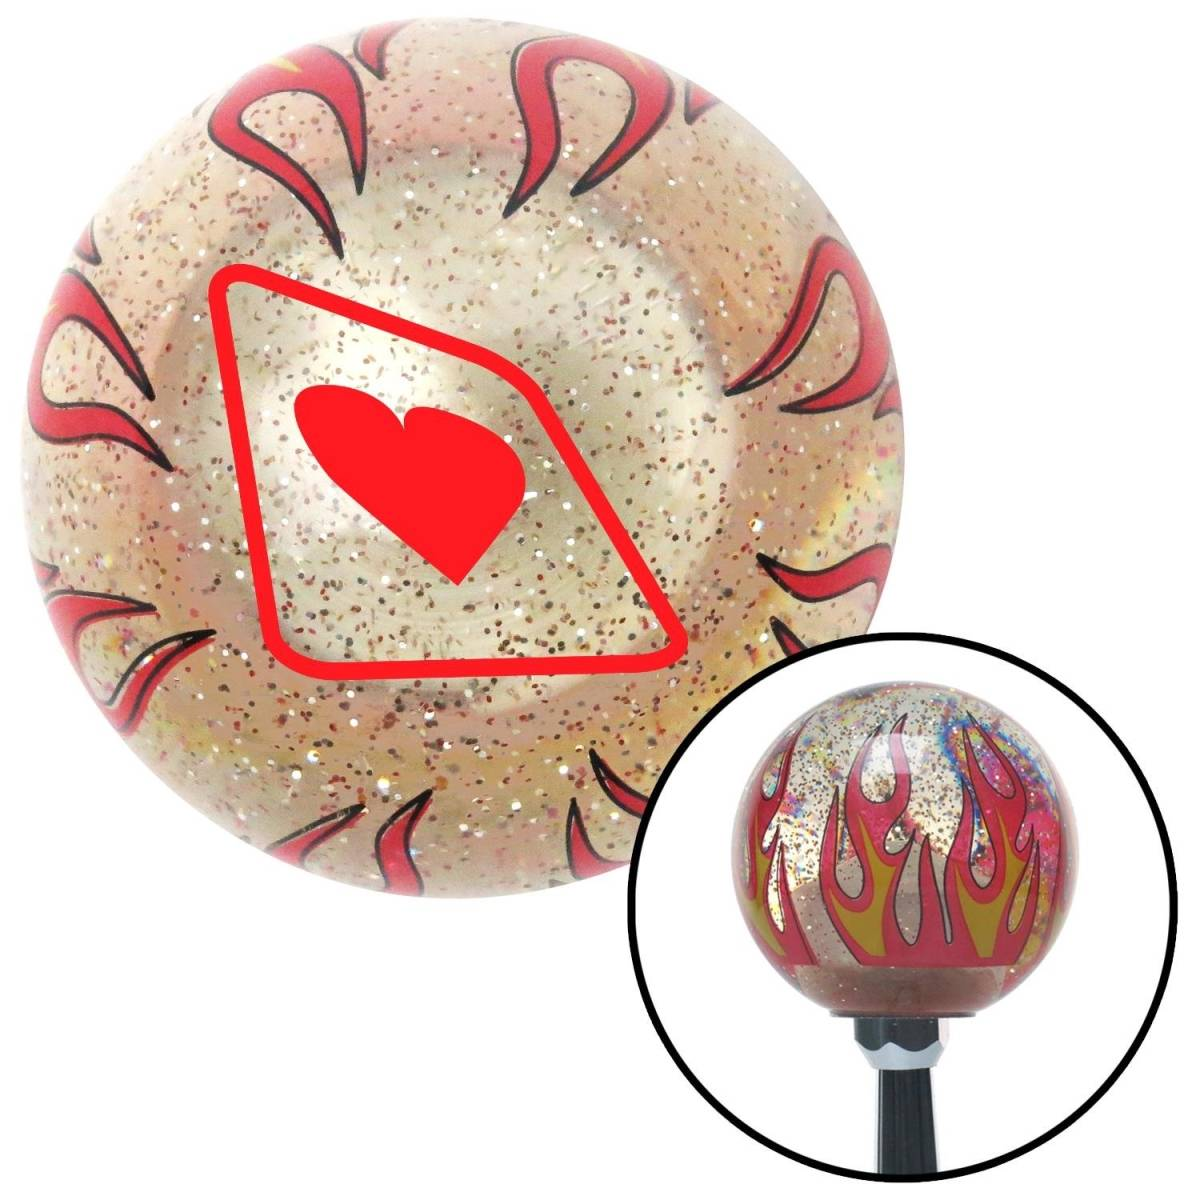 American Shifter Company American Shifter 228309 Red Heart on a Card Clear Flame Metal Flake Shift Knob with M16 x 1.5 Insert Auto Brody